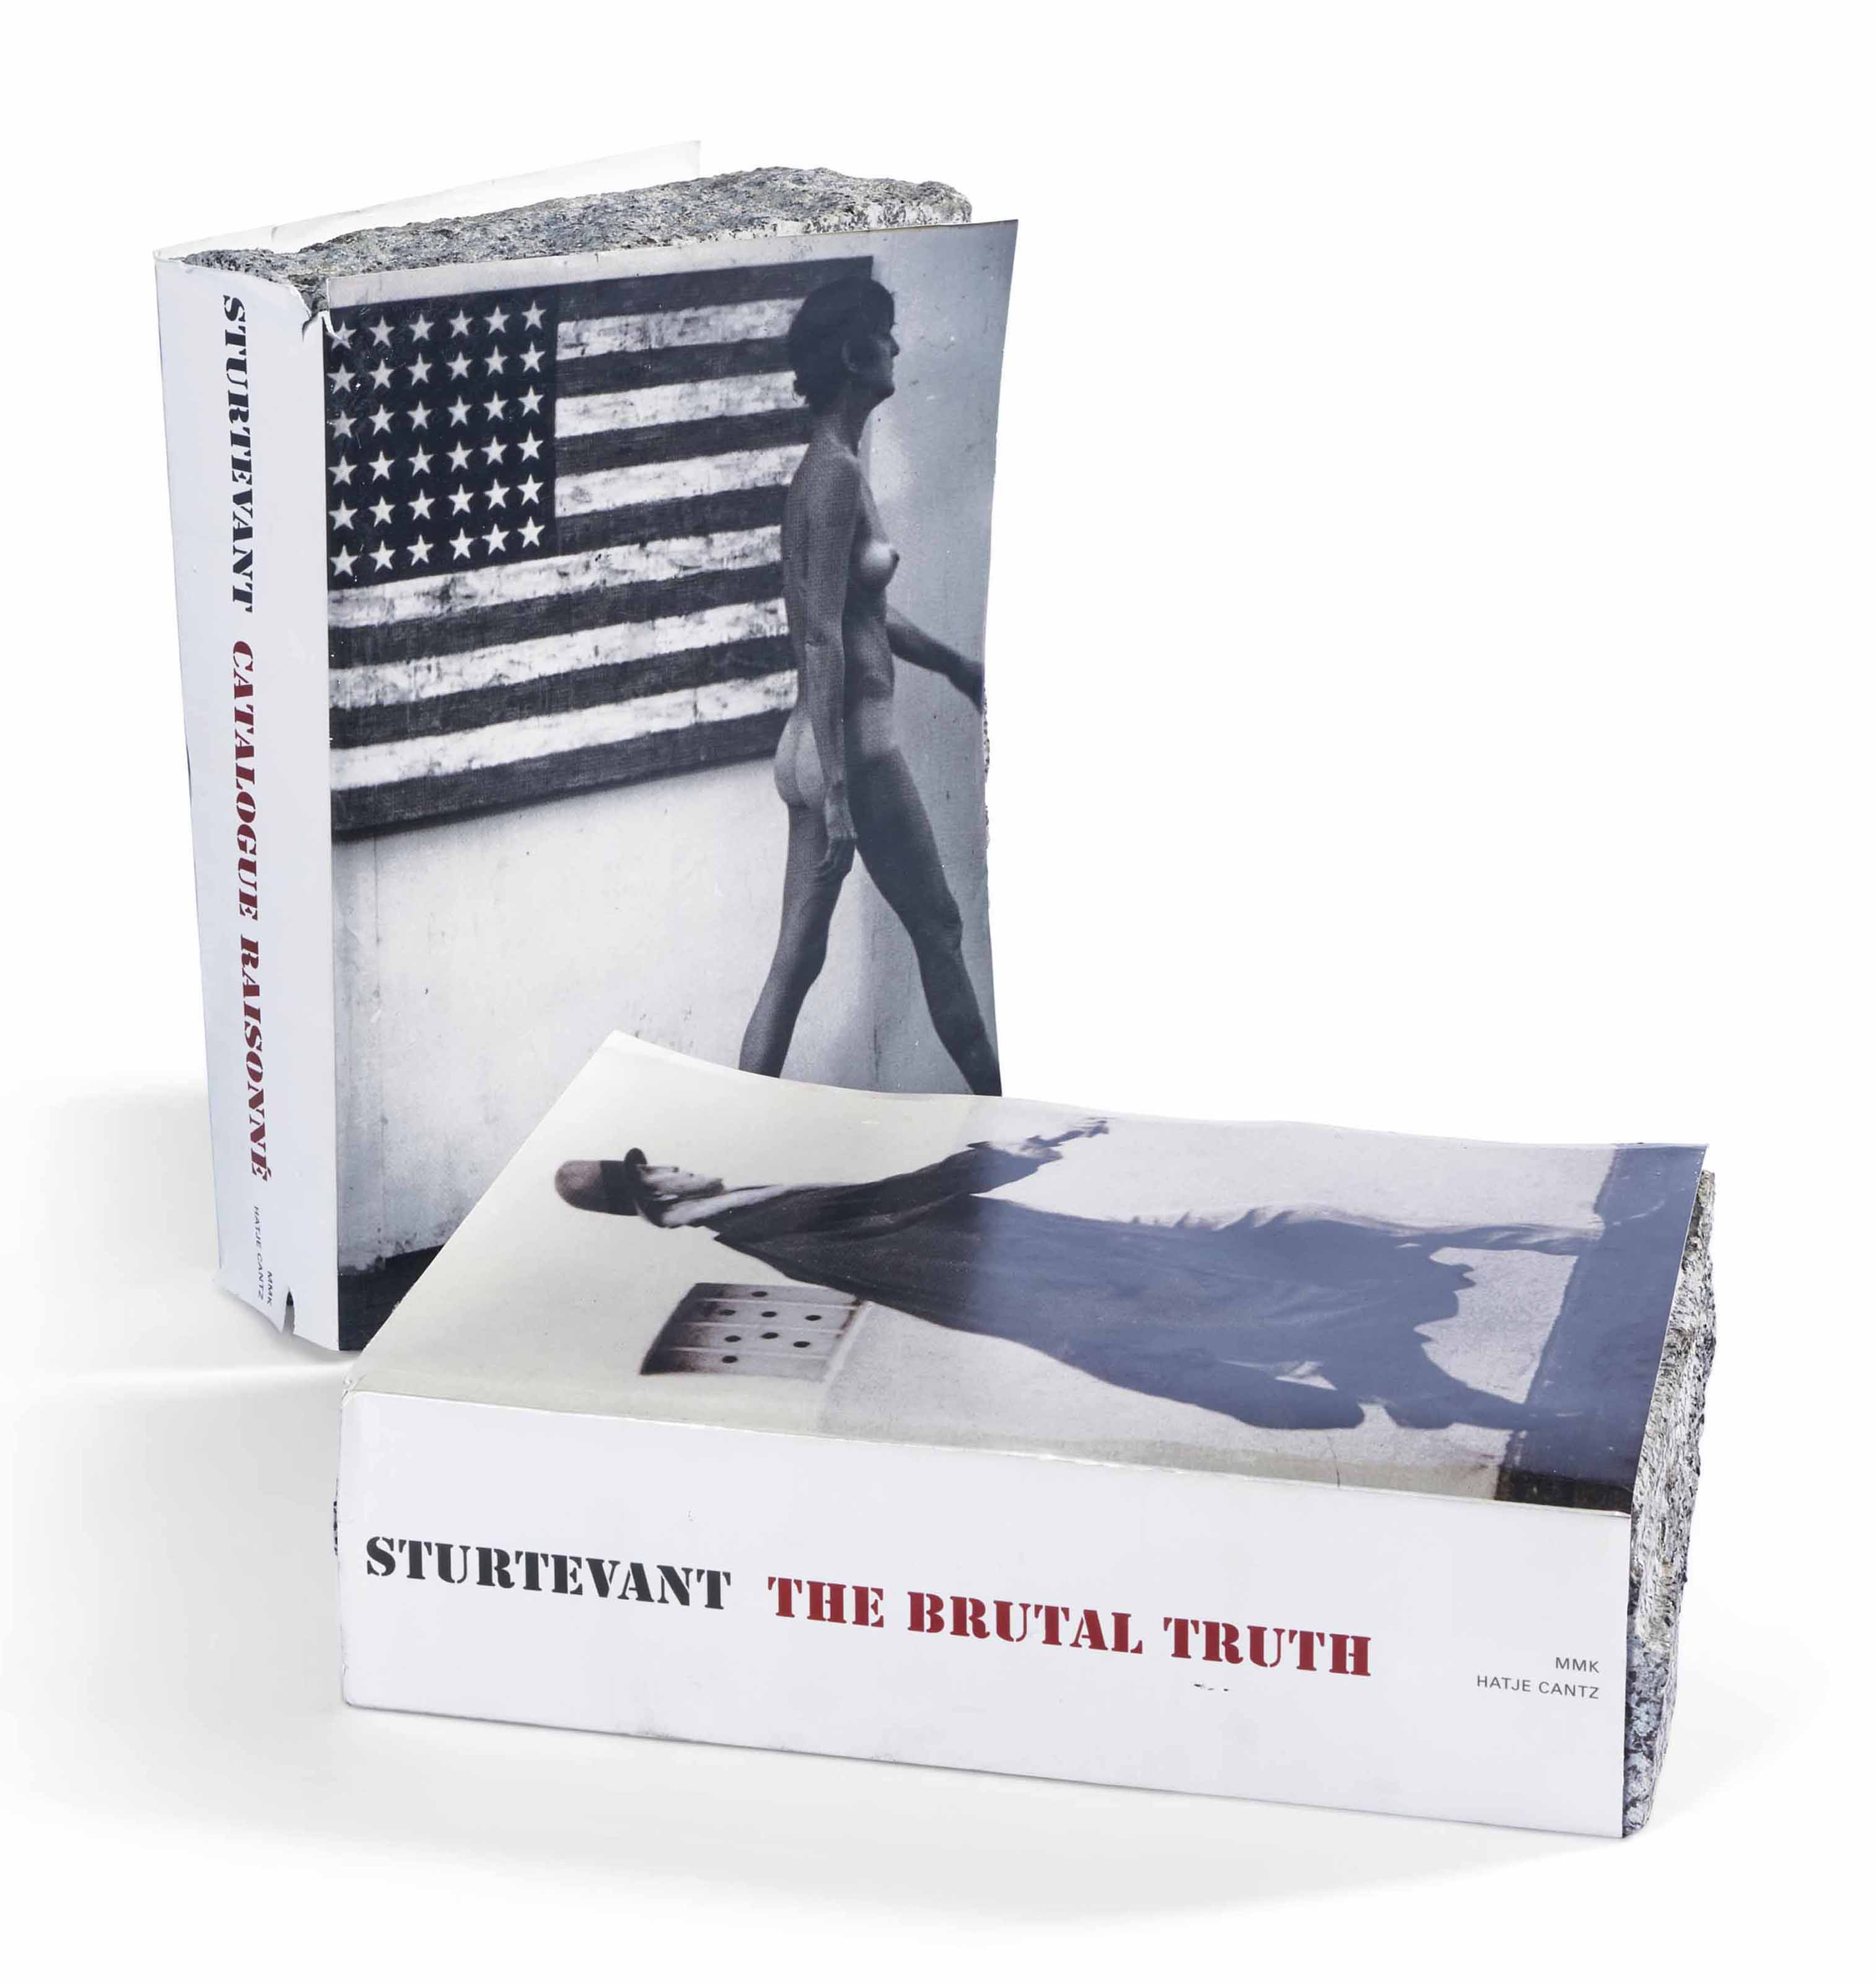 The brutal truth / Catalogue raisonné Brickbat